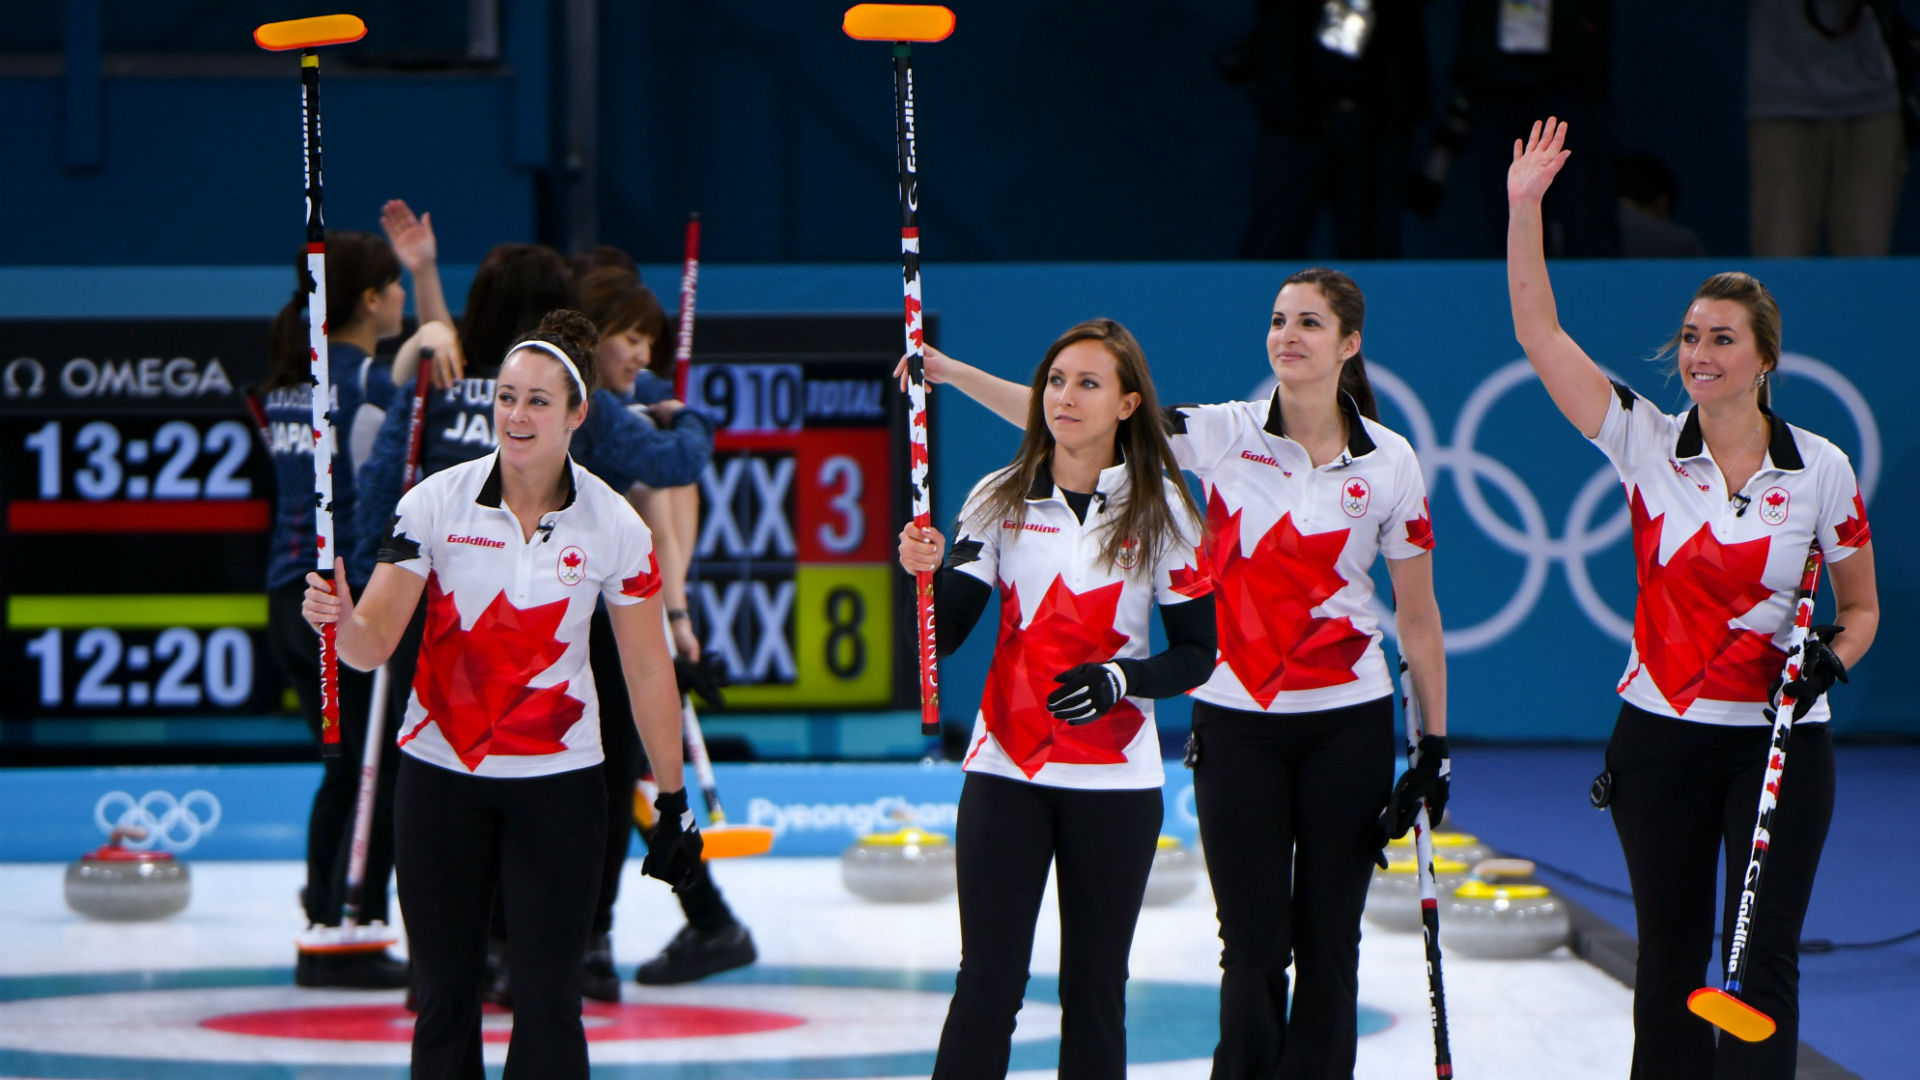 Canada's Homan misses Olympic curling playoffs, Koe advances